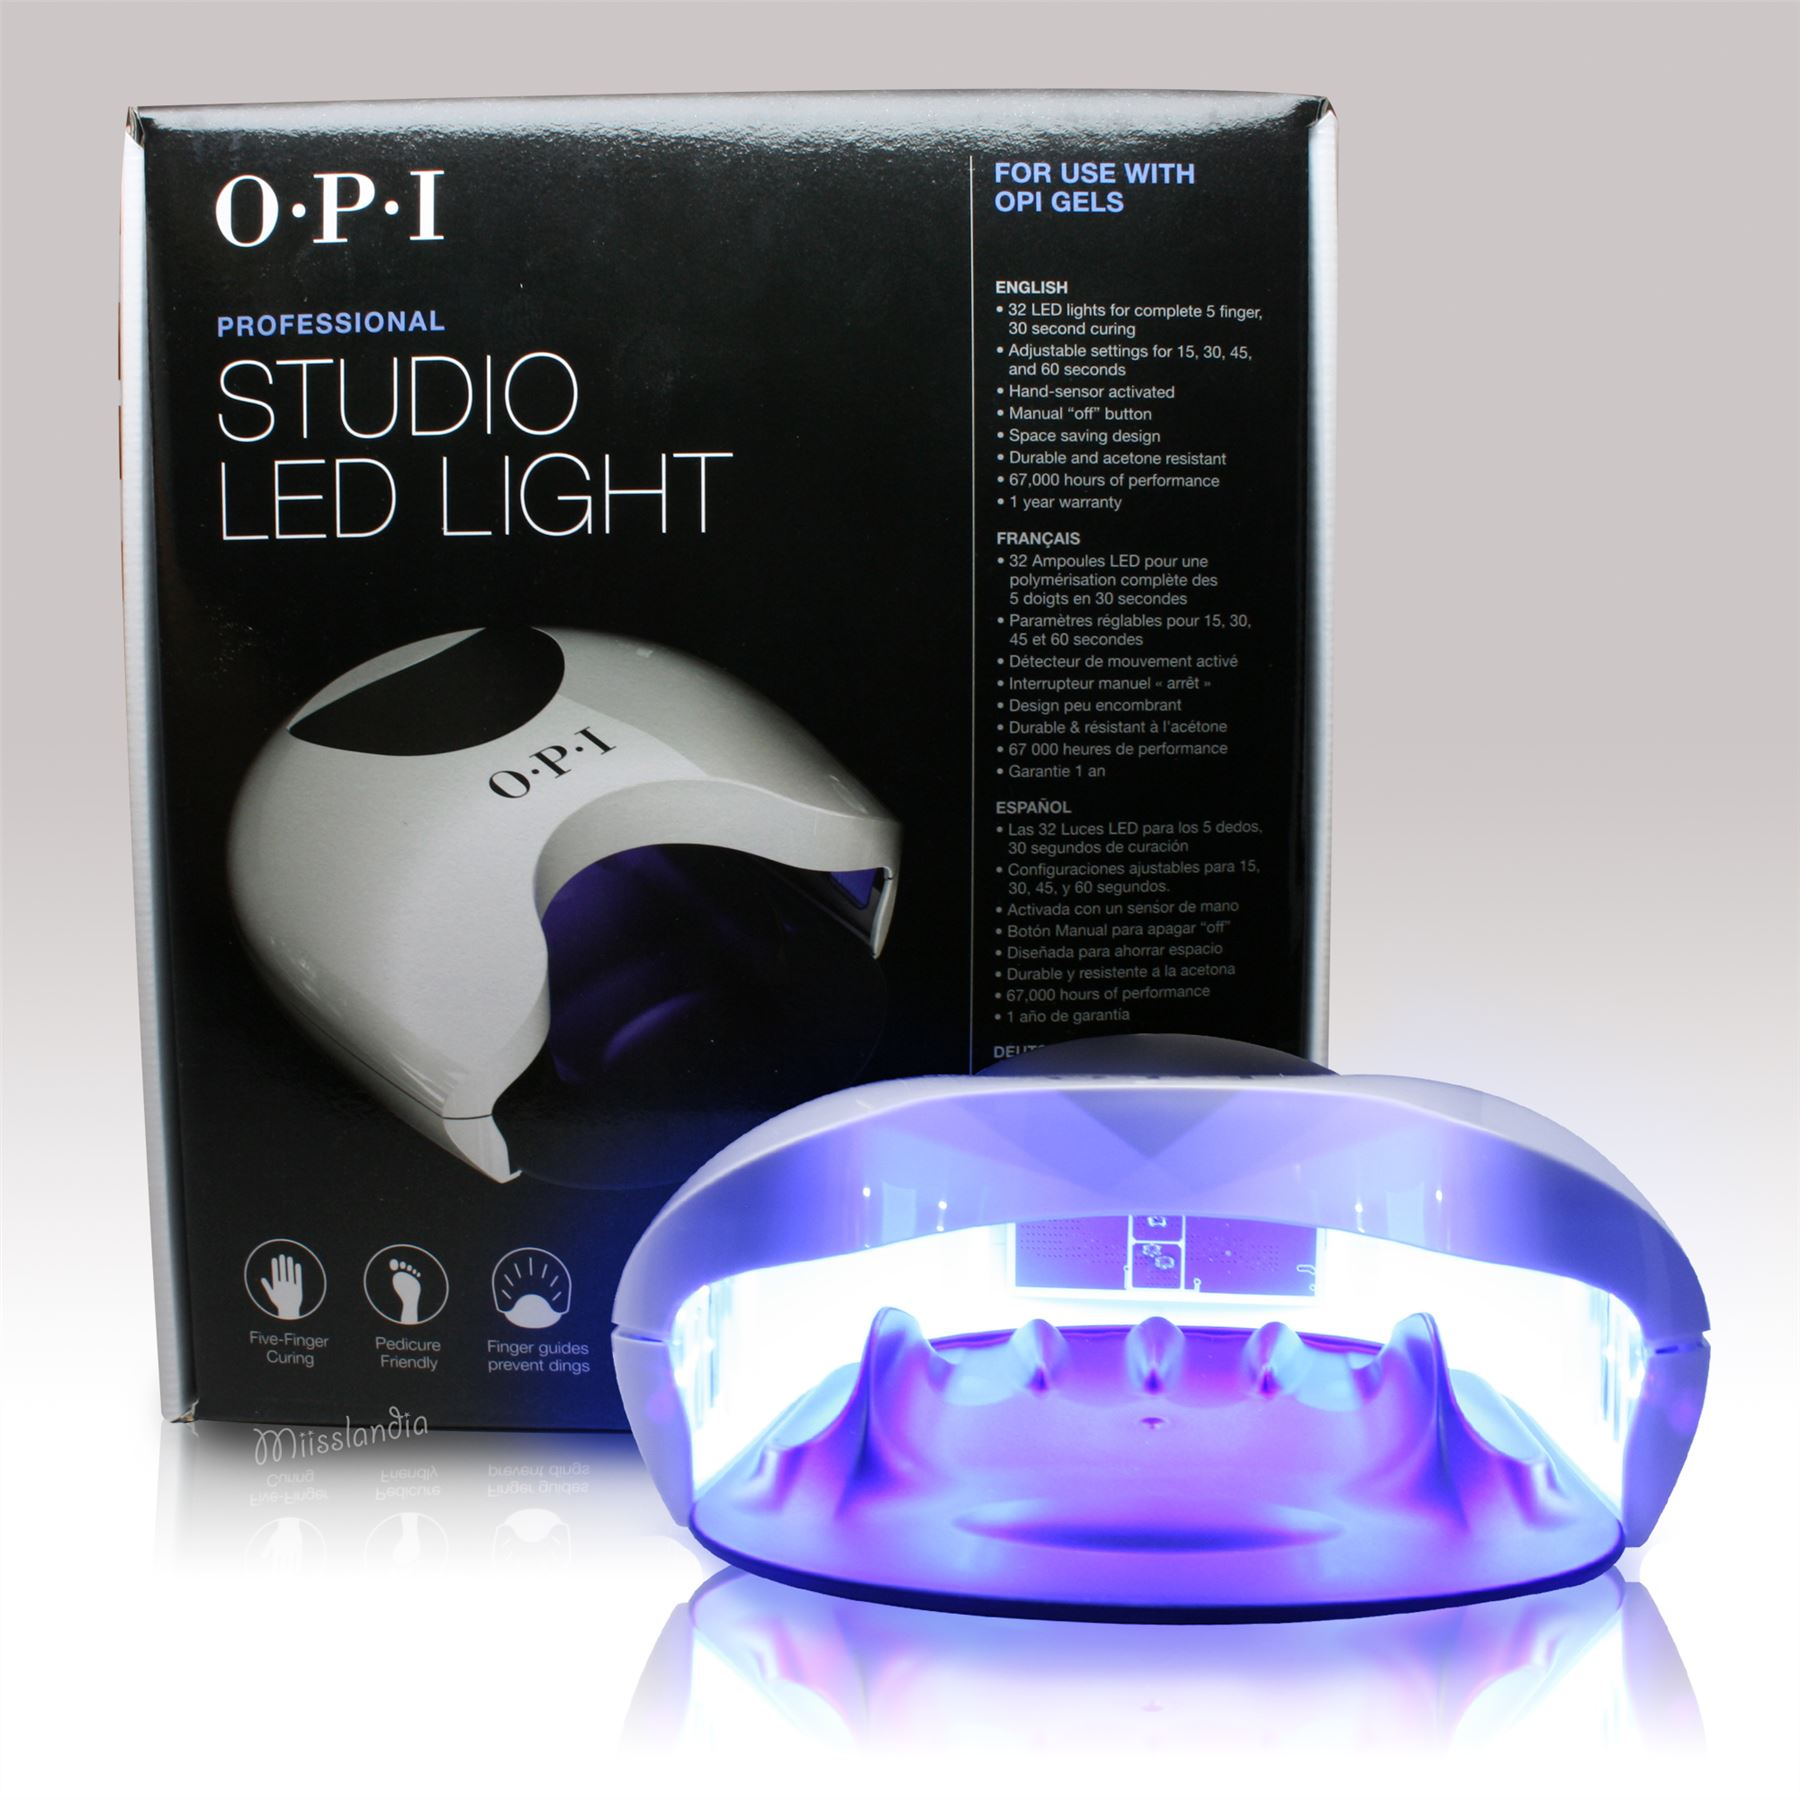 OPI Professional Studio LED Light GL900 Gel Lamp Dryer 15